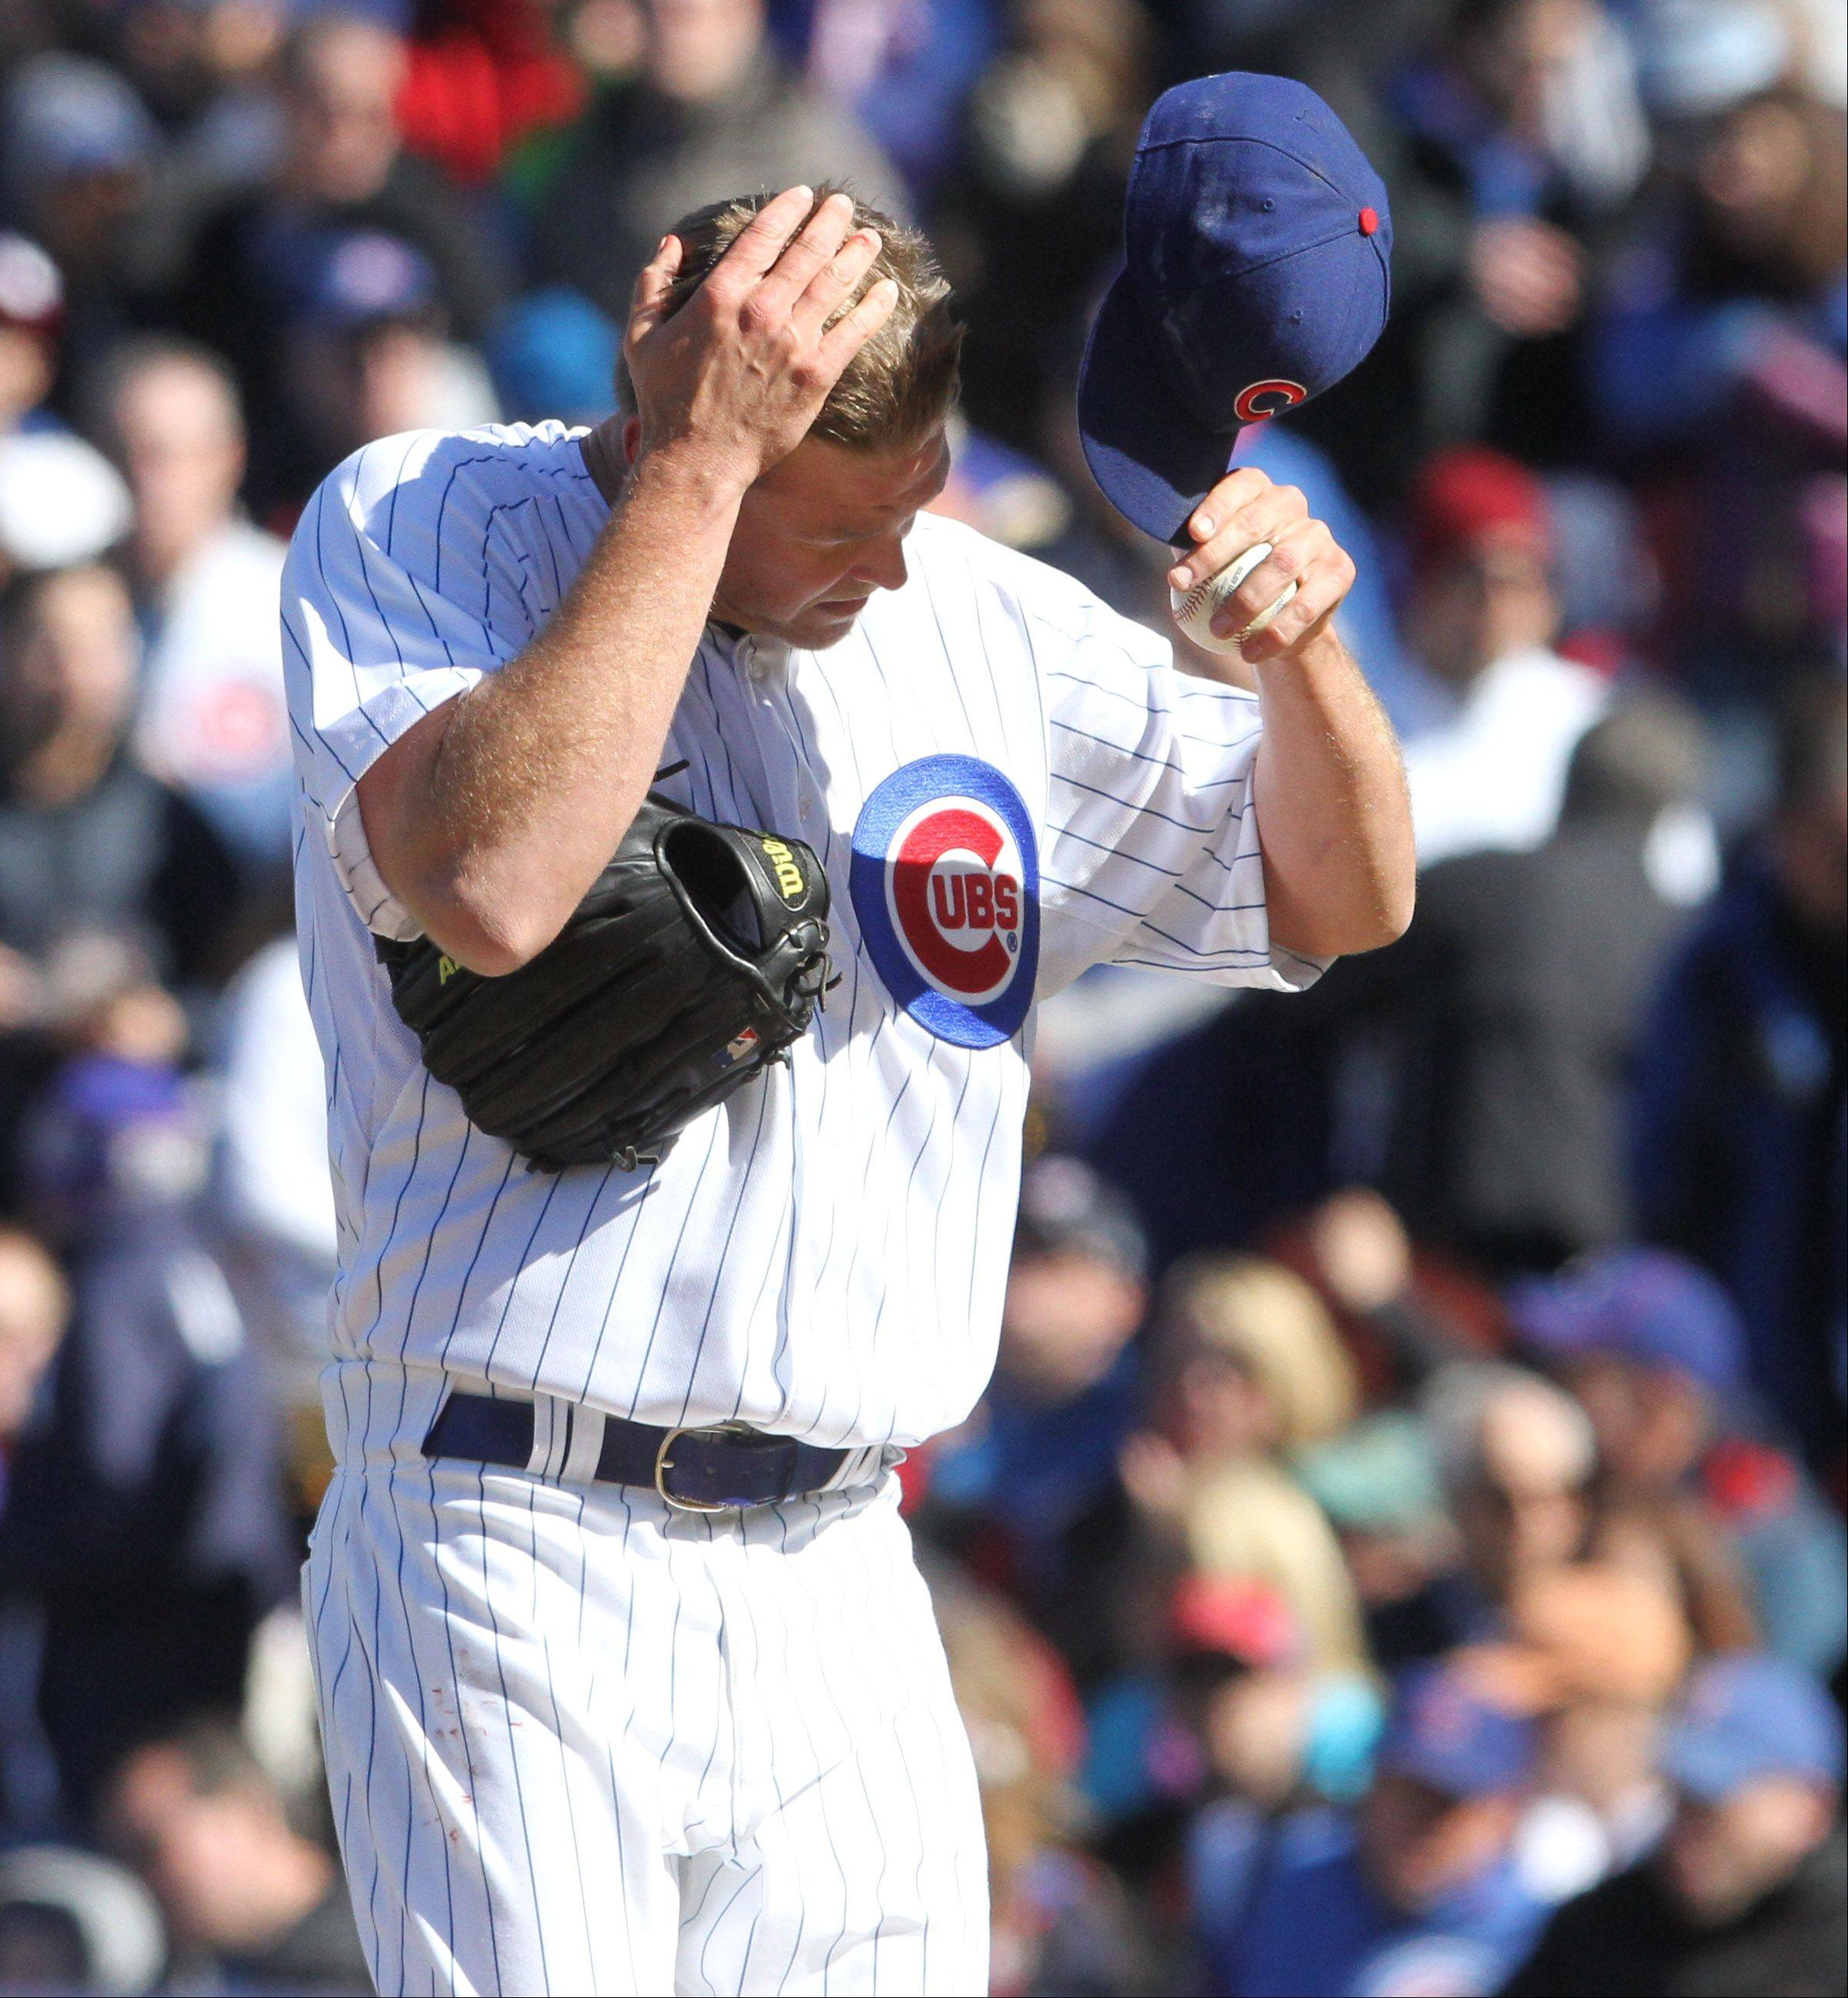 Chicago Cubs relief pitcher Kerry Wood wipes his forehead.